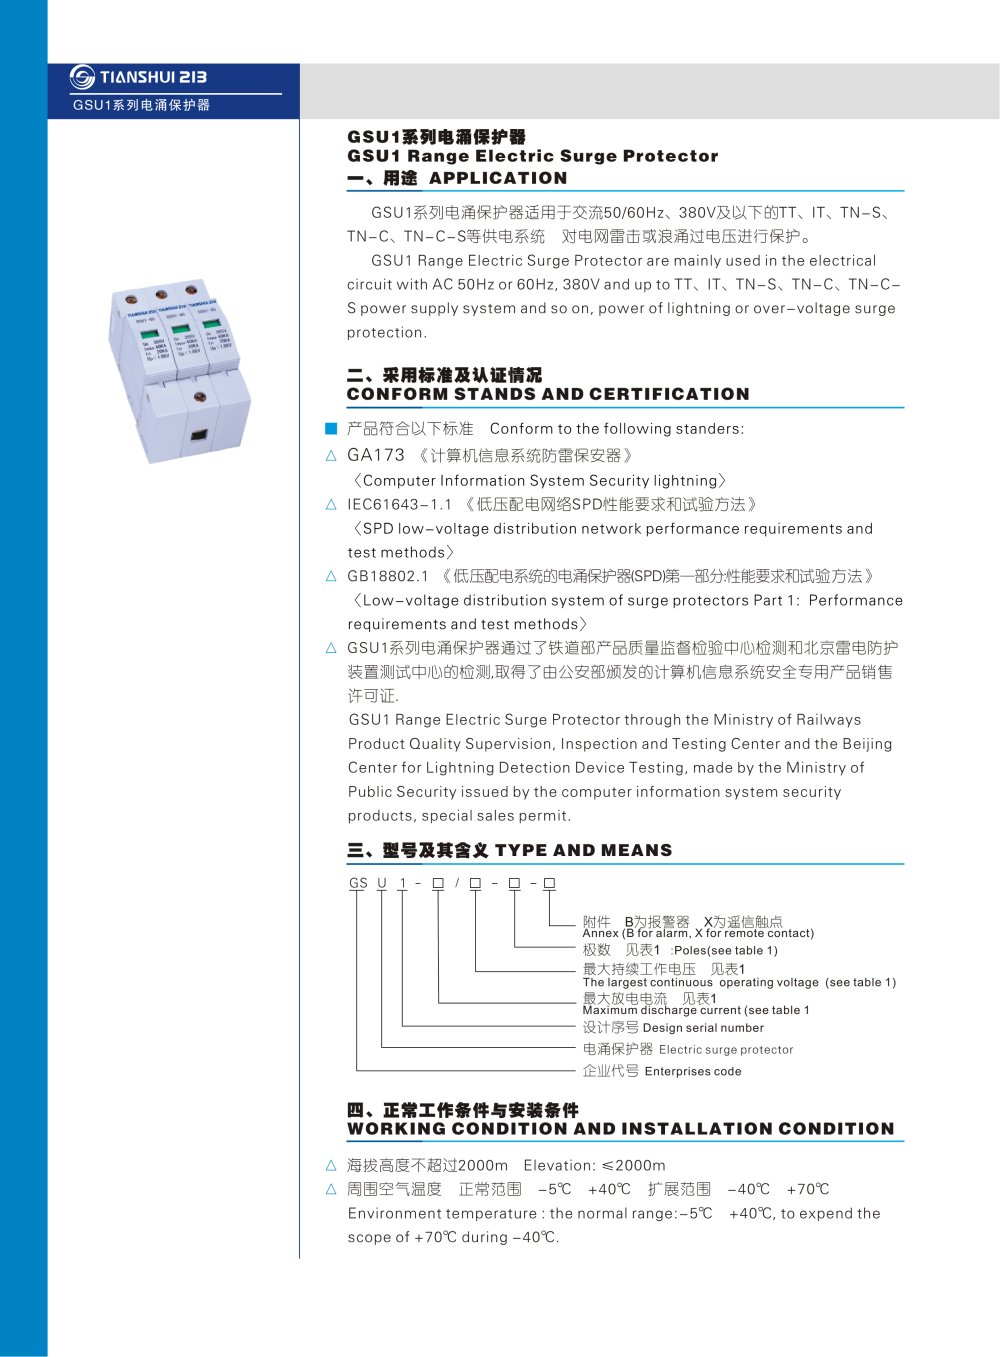 Gsu1 Series Surge Protection Device Tianshui 213 Electrical Does Altitude Affect Circuit Breaker Operation Breakers Work 1 5 Pages